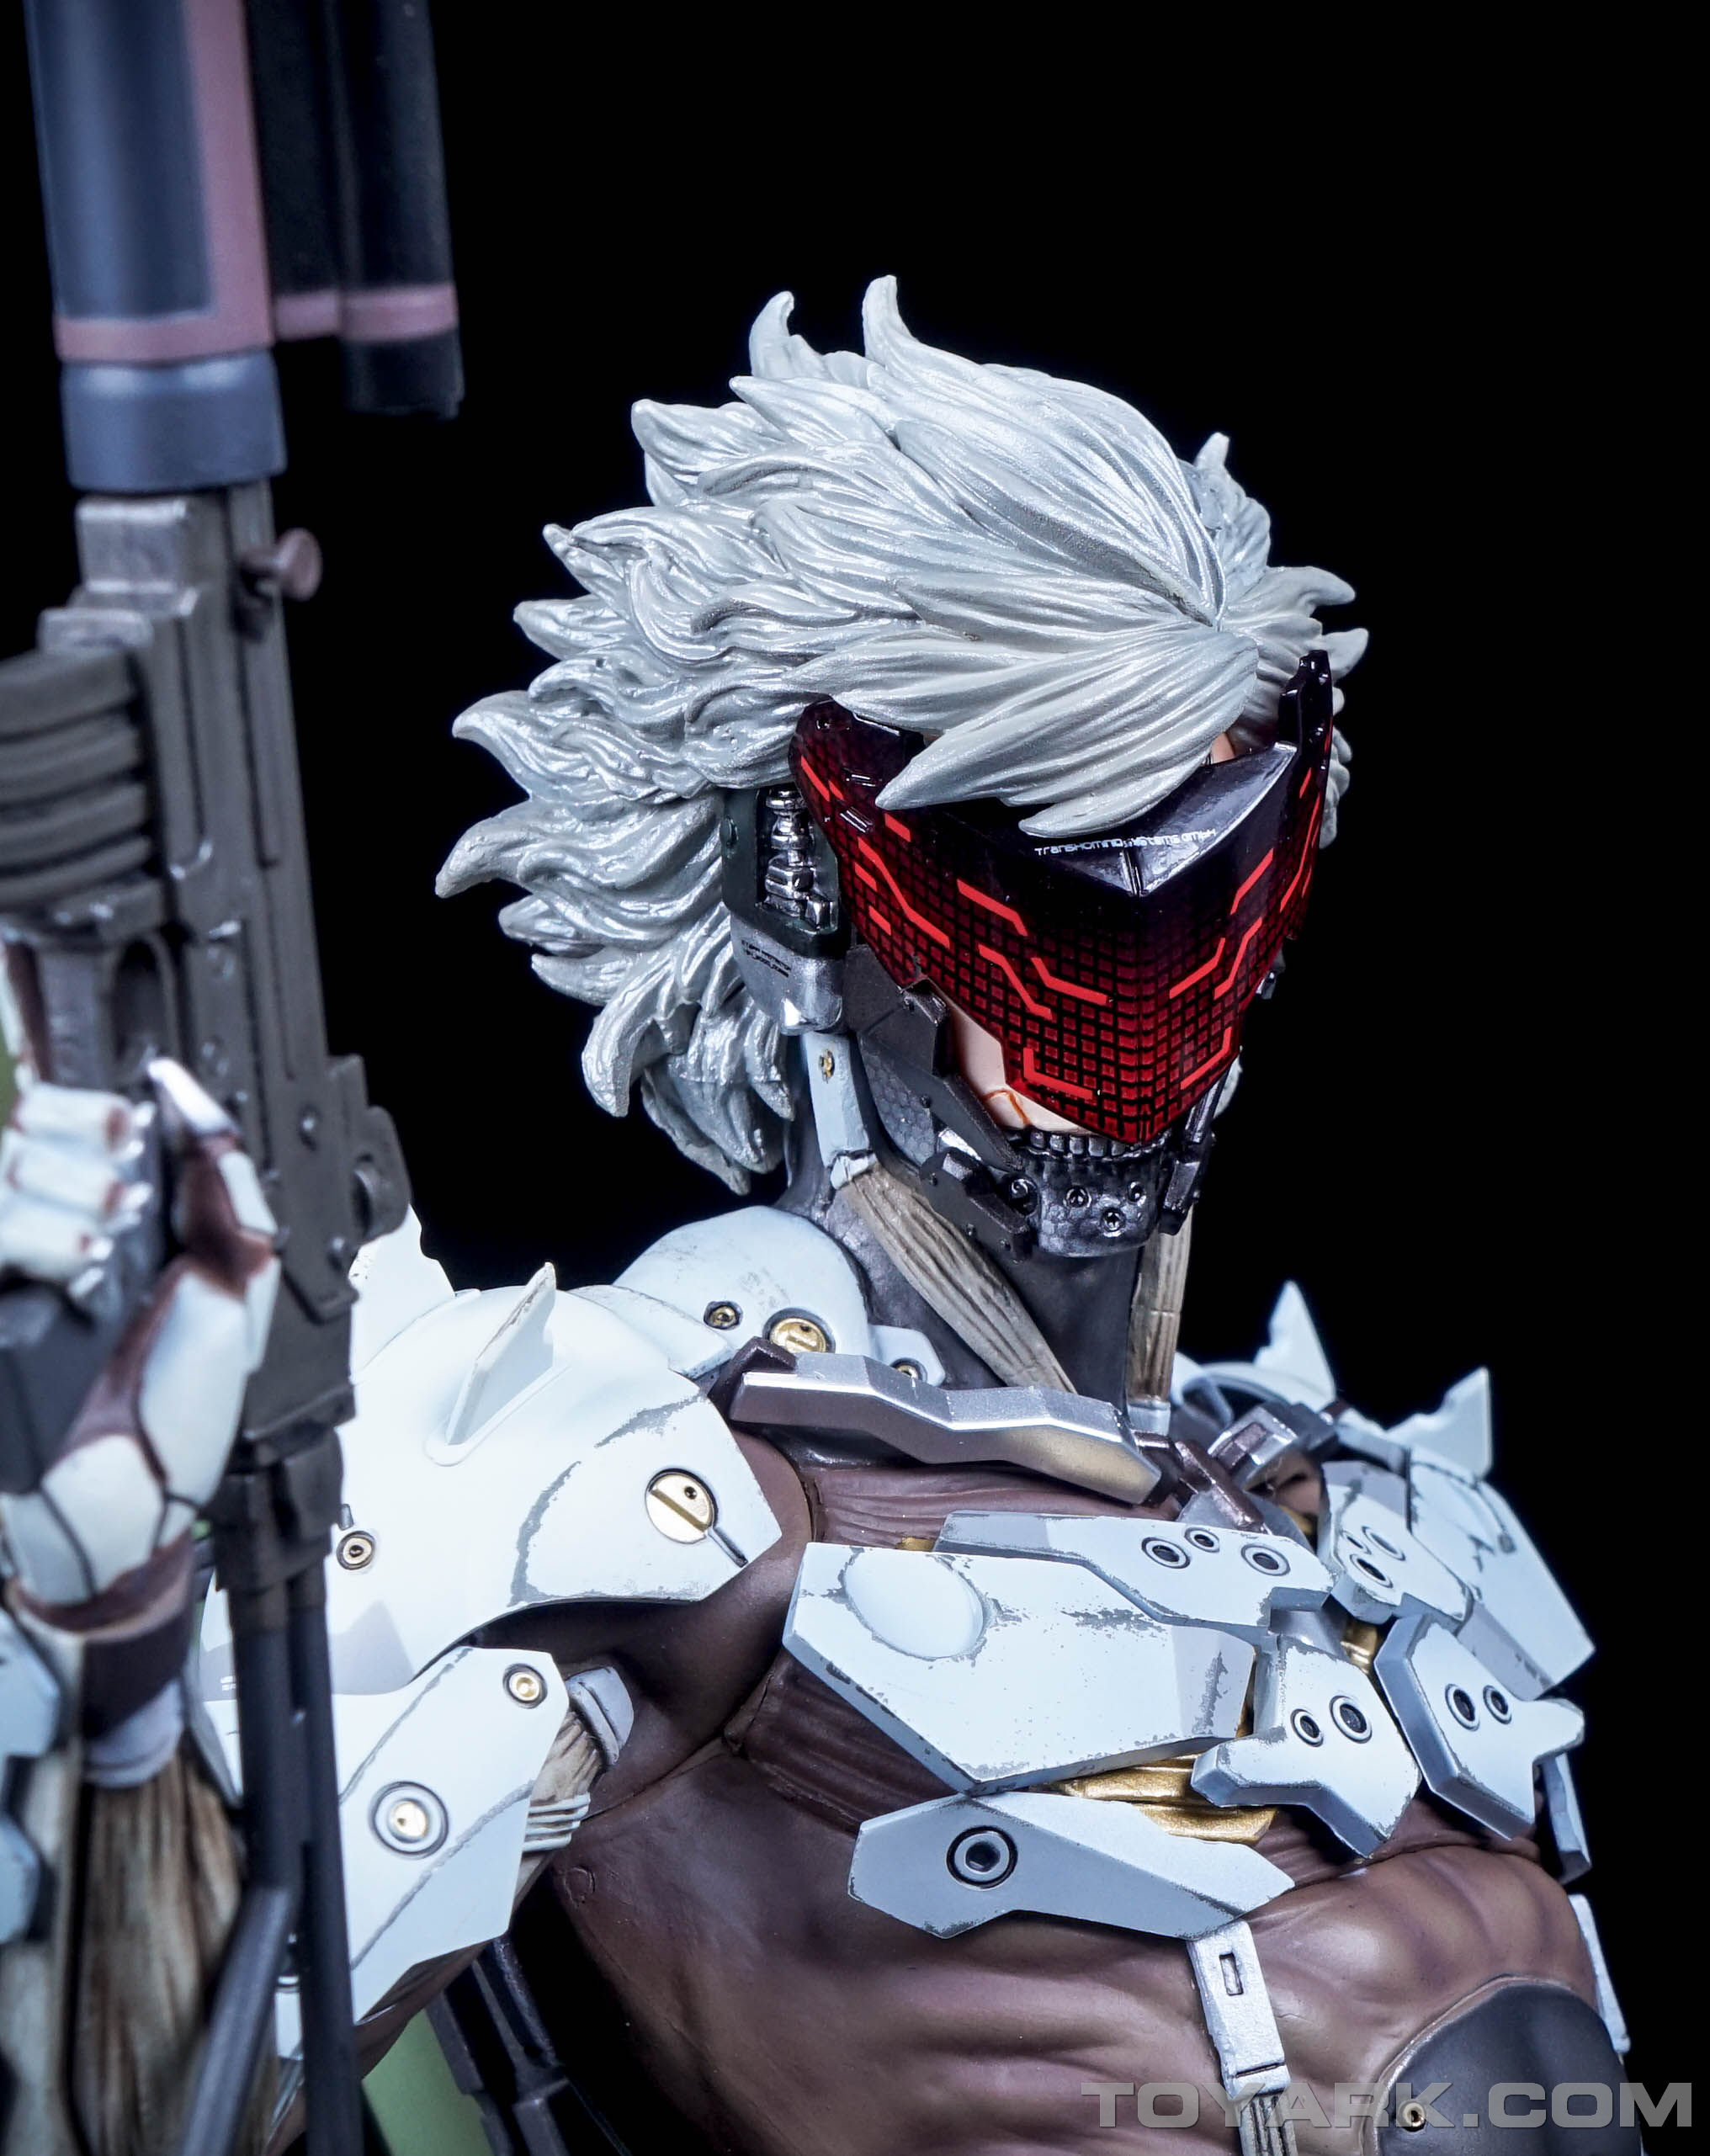 http://news.toyark.com/wp-content/uploads/sites/4/2015/09/MGSV-Raiden-White-Armor-Statue-034.jpg